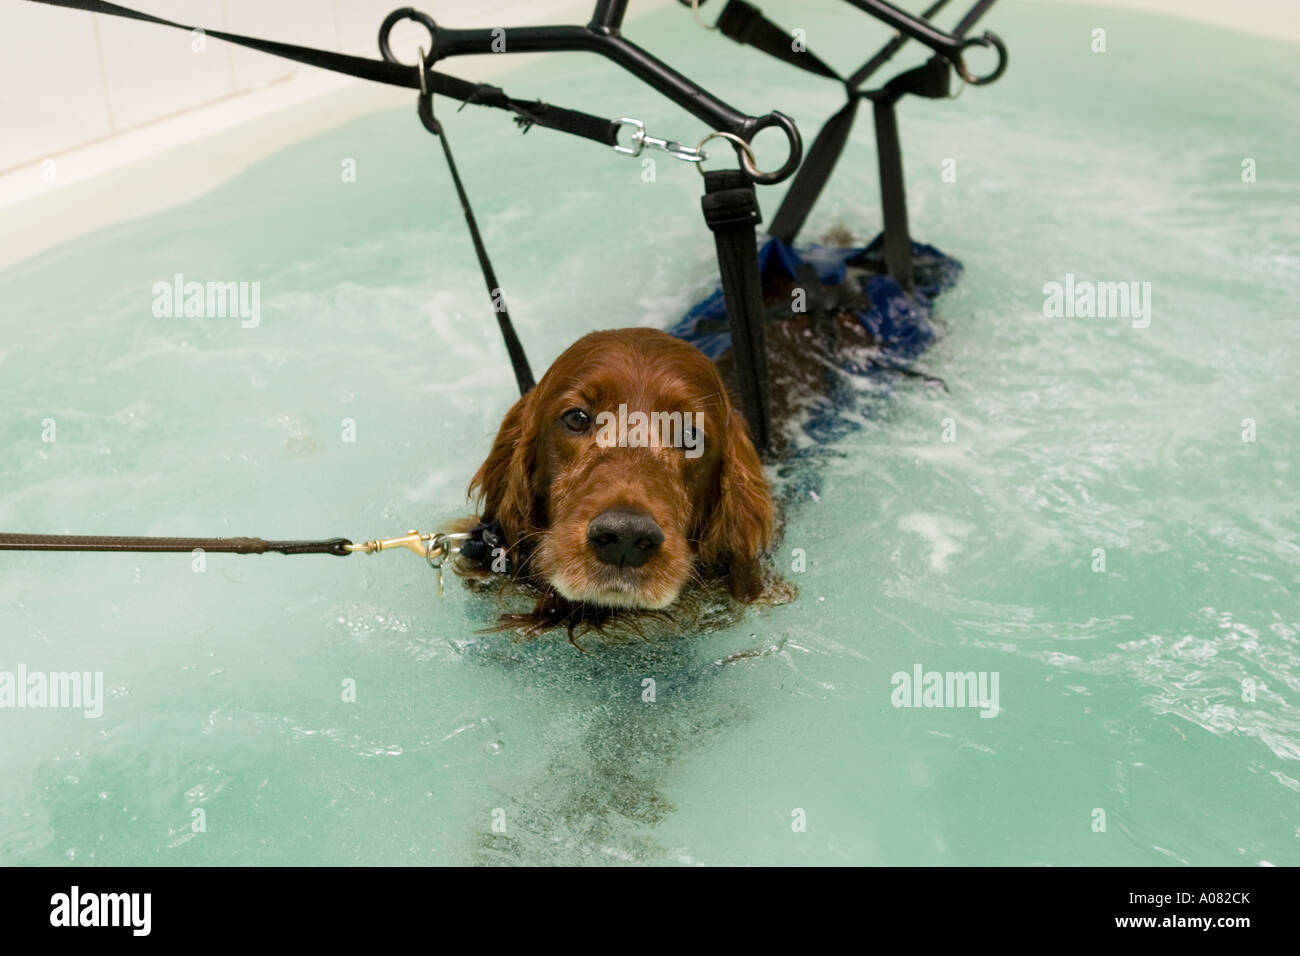 Dog in harness to hydrotherapy pool Stock Photo